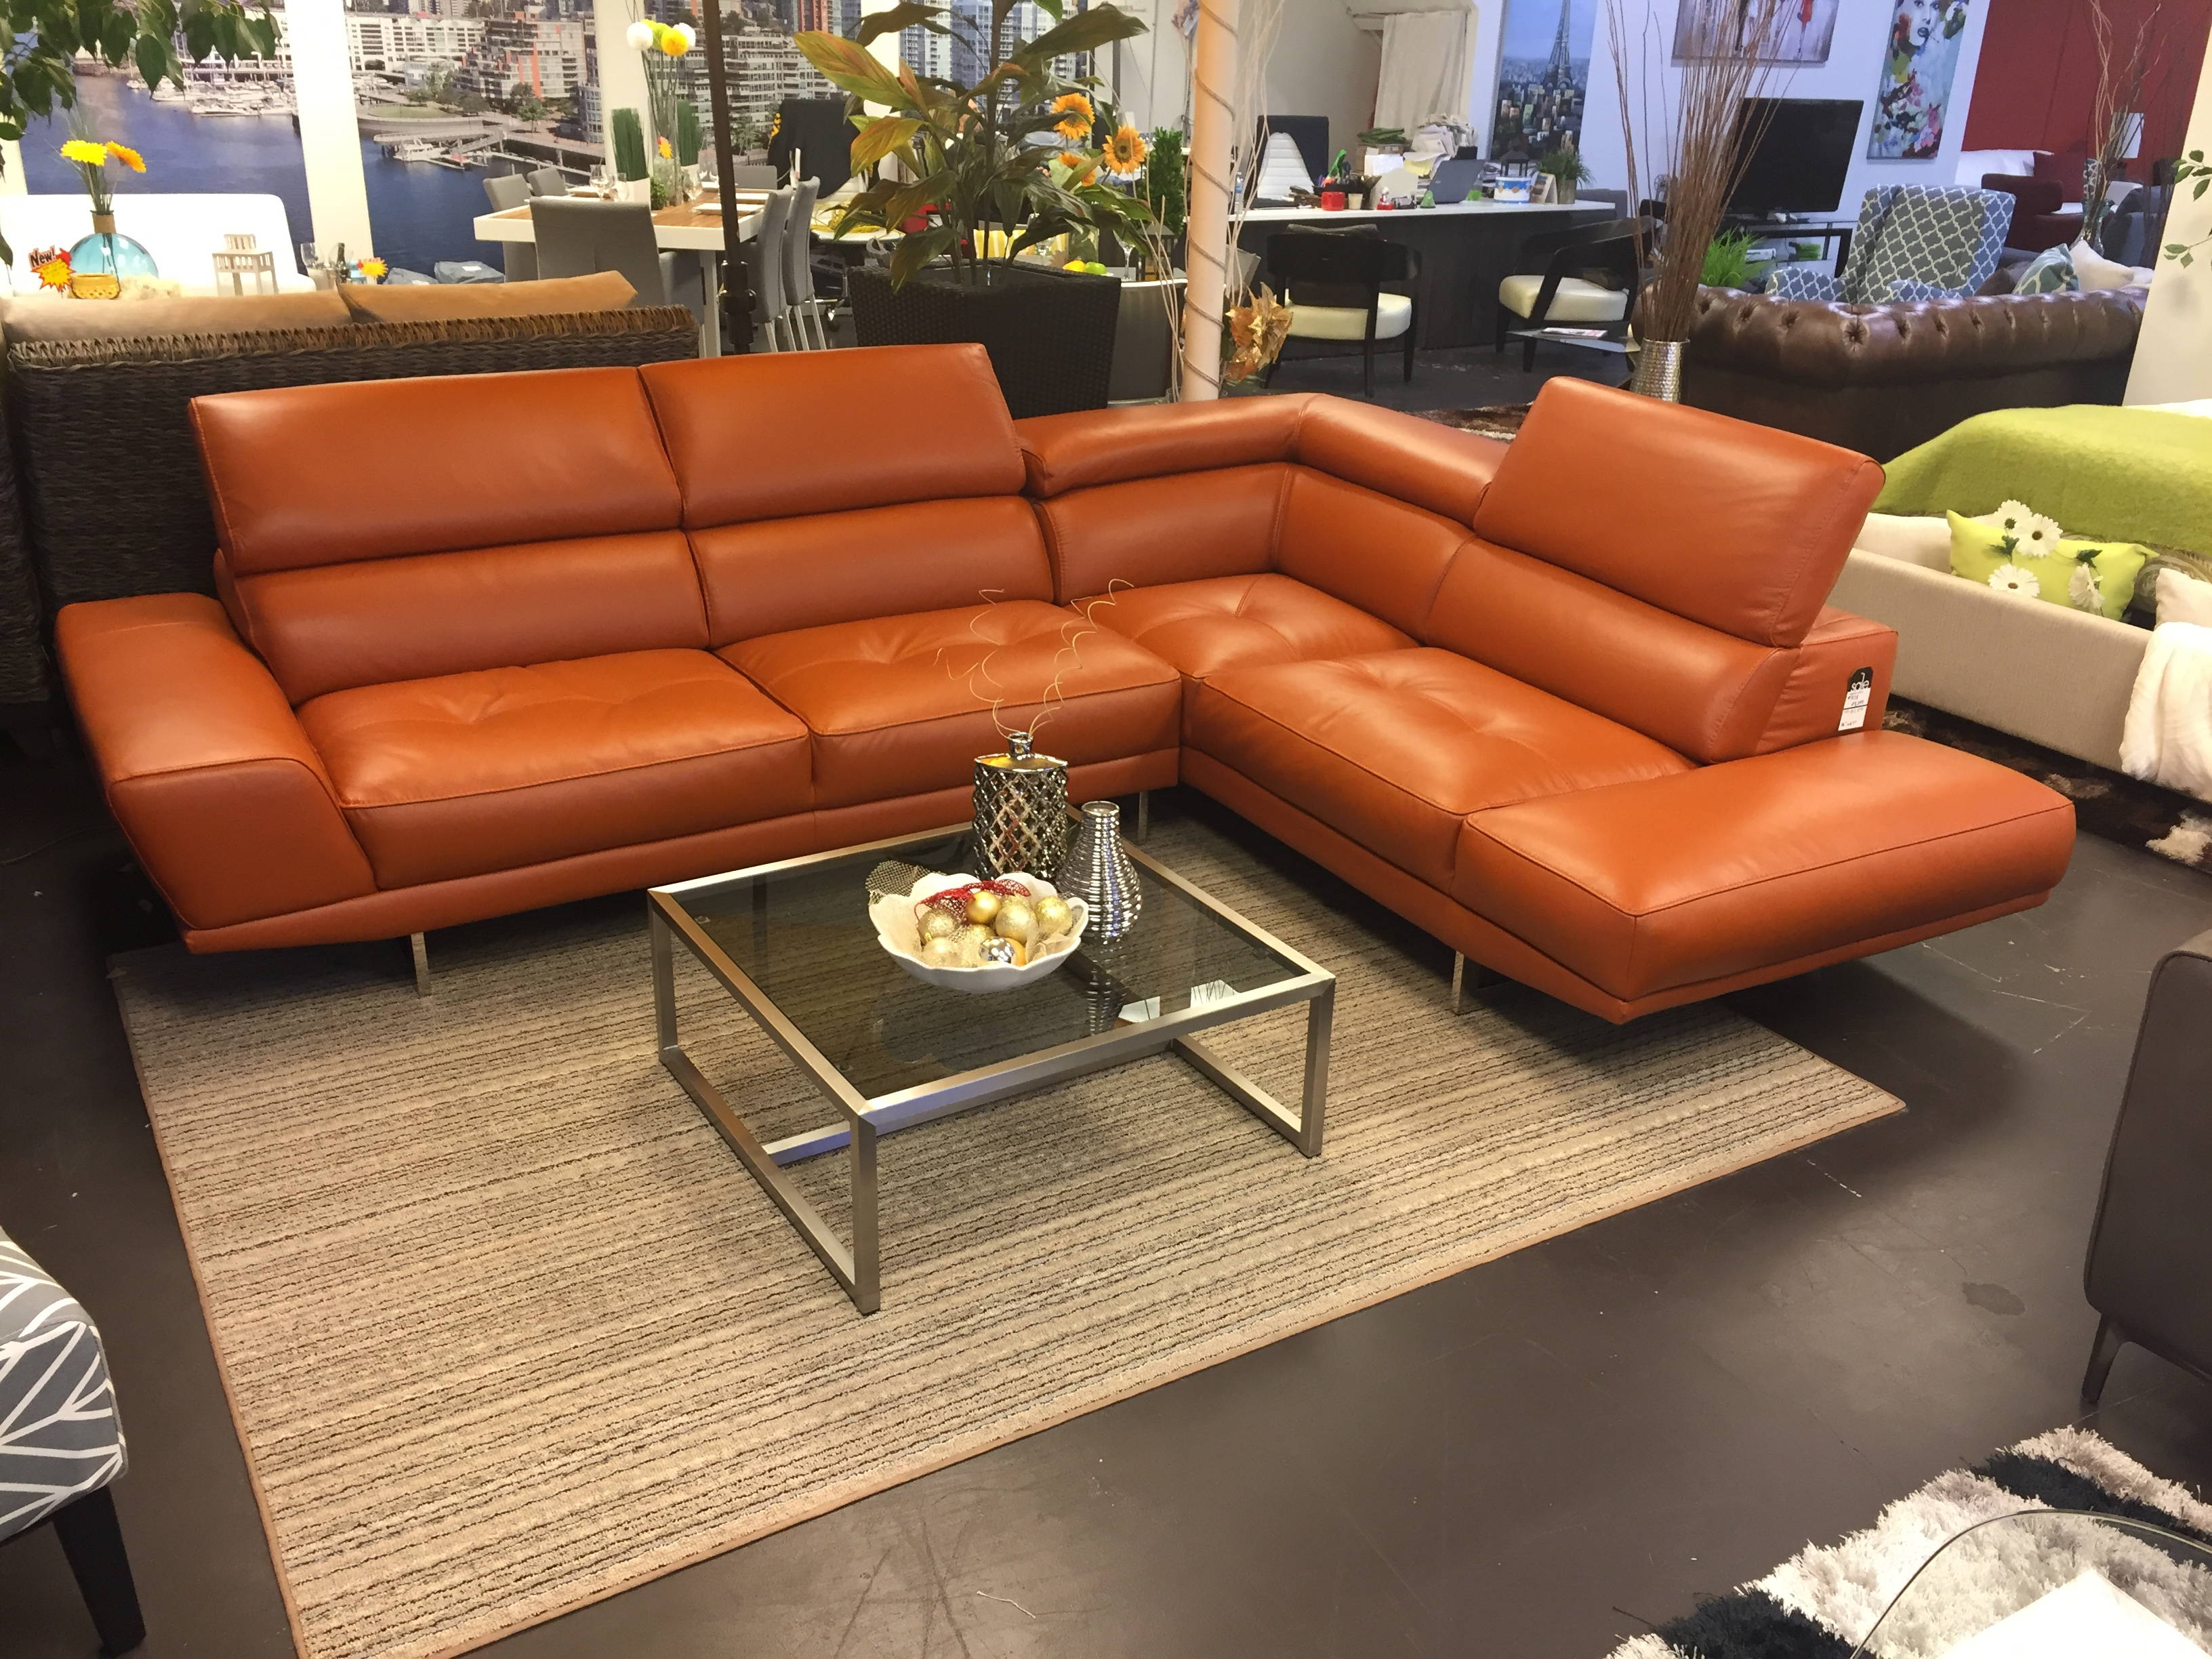 Modern Sofa Vancouver the Giovanni shown in Orange Leather